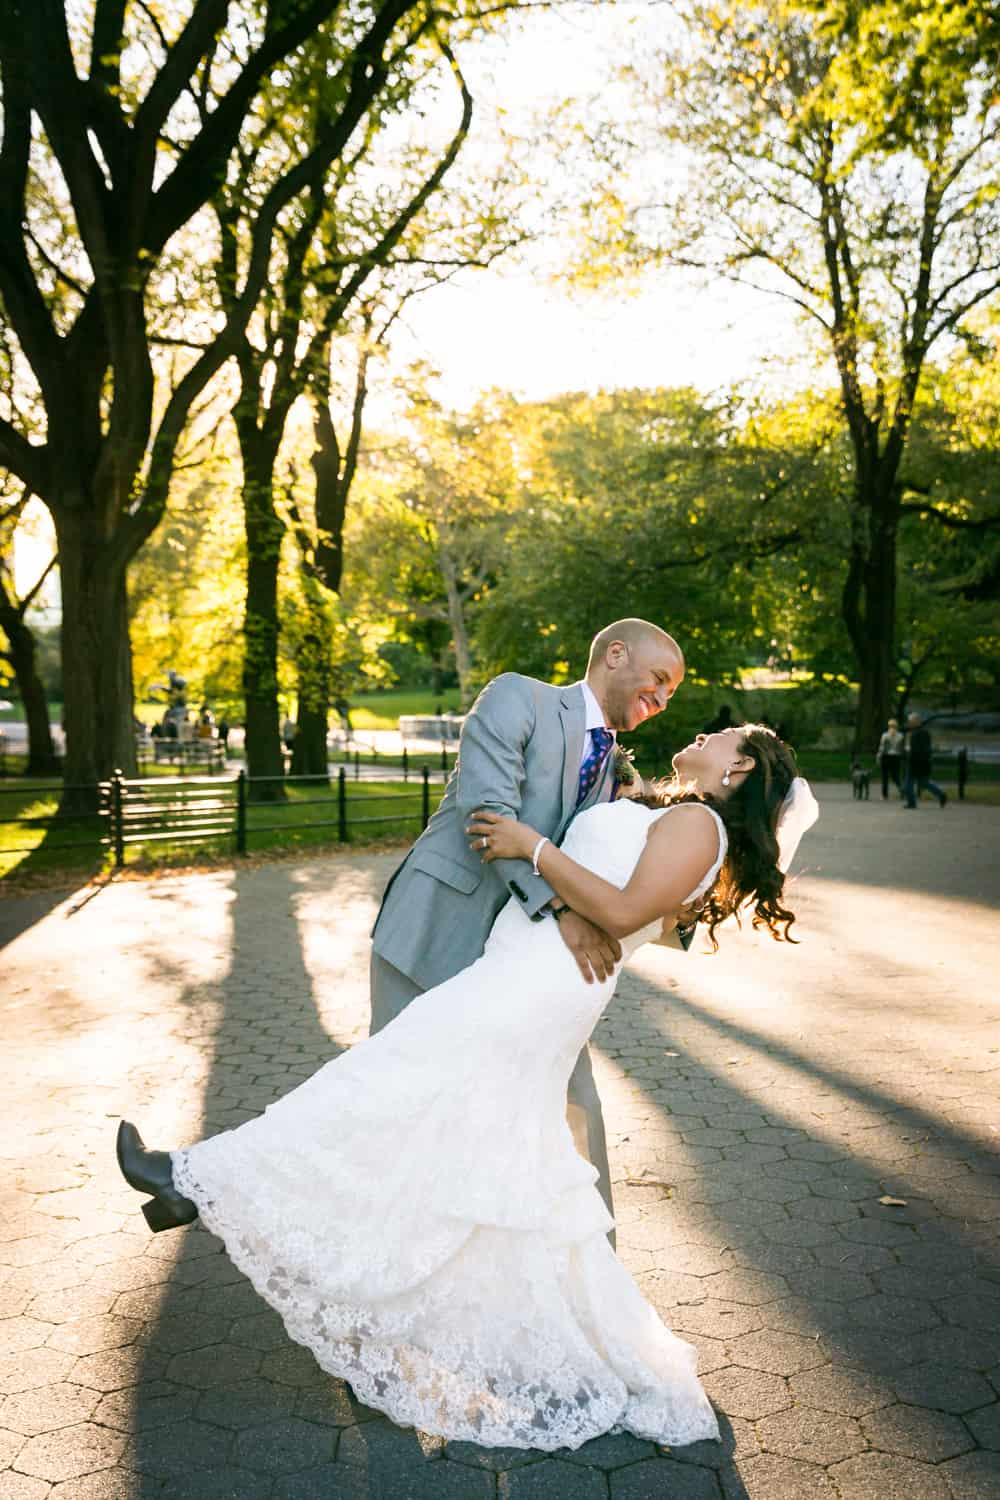 Bride and groom dancing on the Mall in Central Park